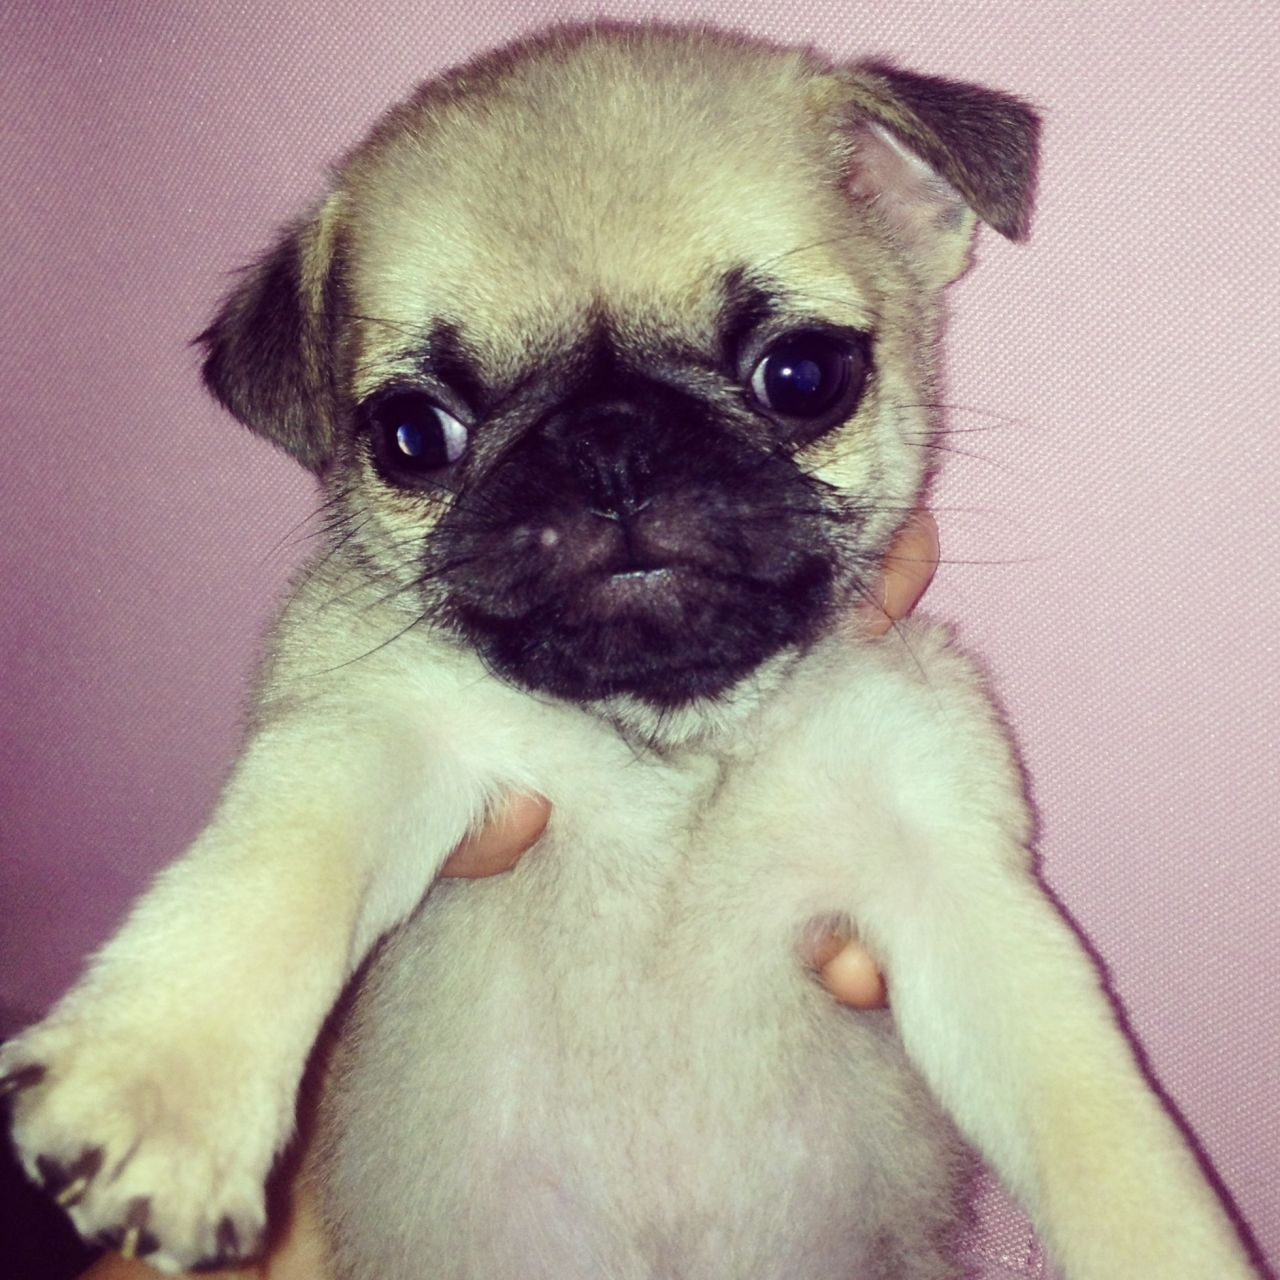 Pedigree Pug Puppies For Sale Fawn W Black Mask Pug Puppies